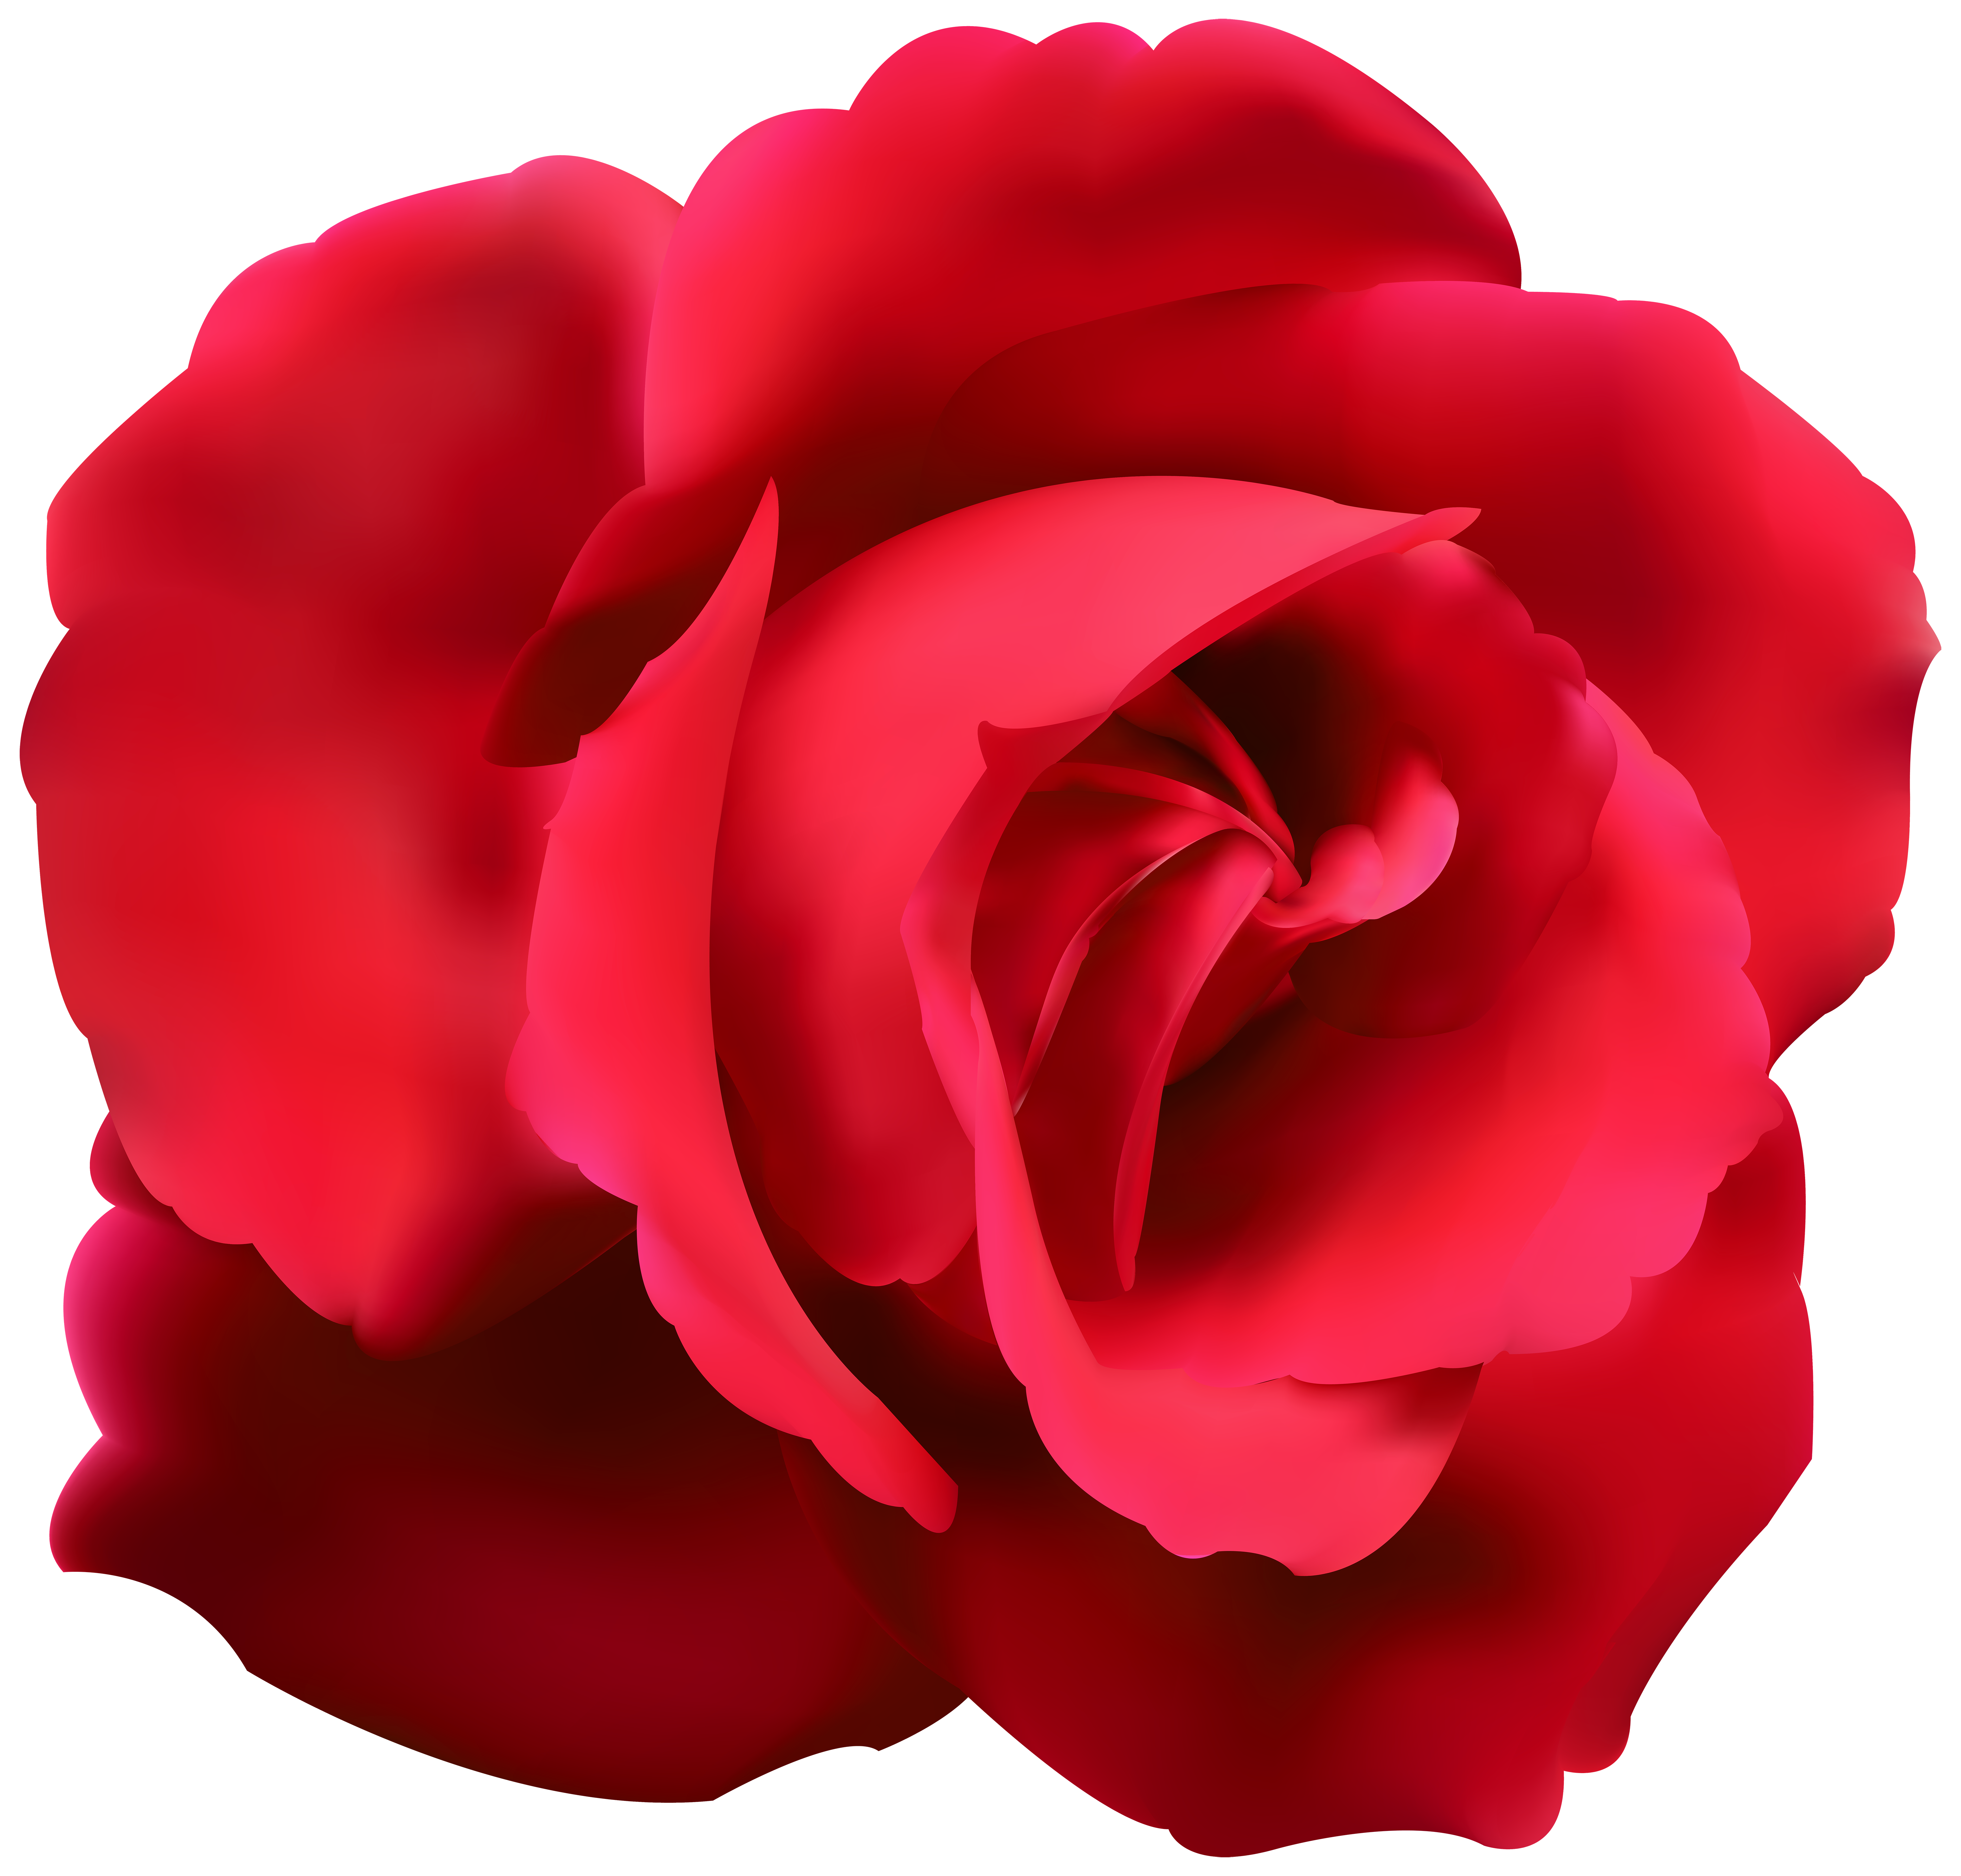 Clipart roses bed. Red rose clip art